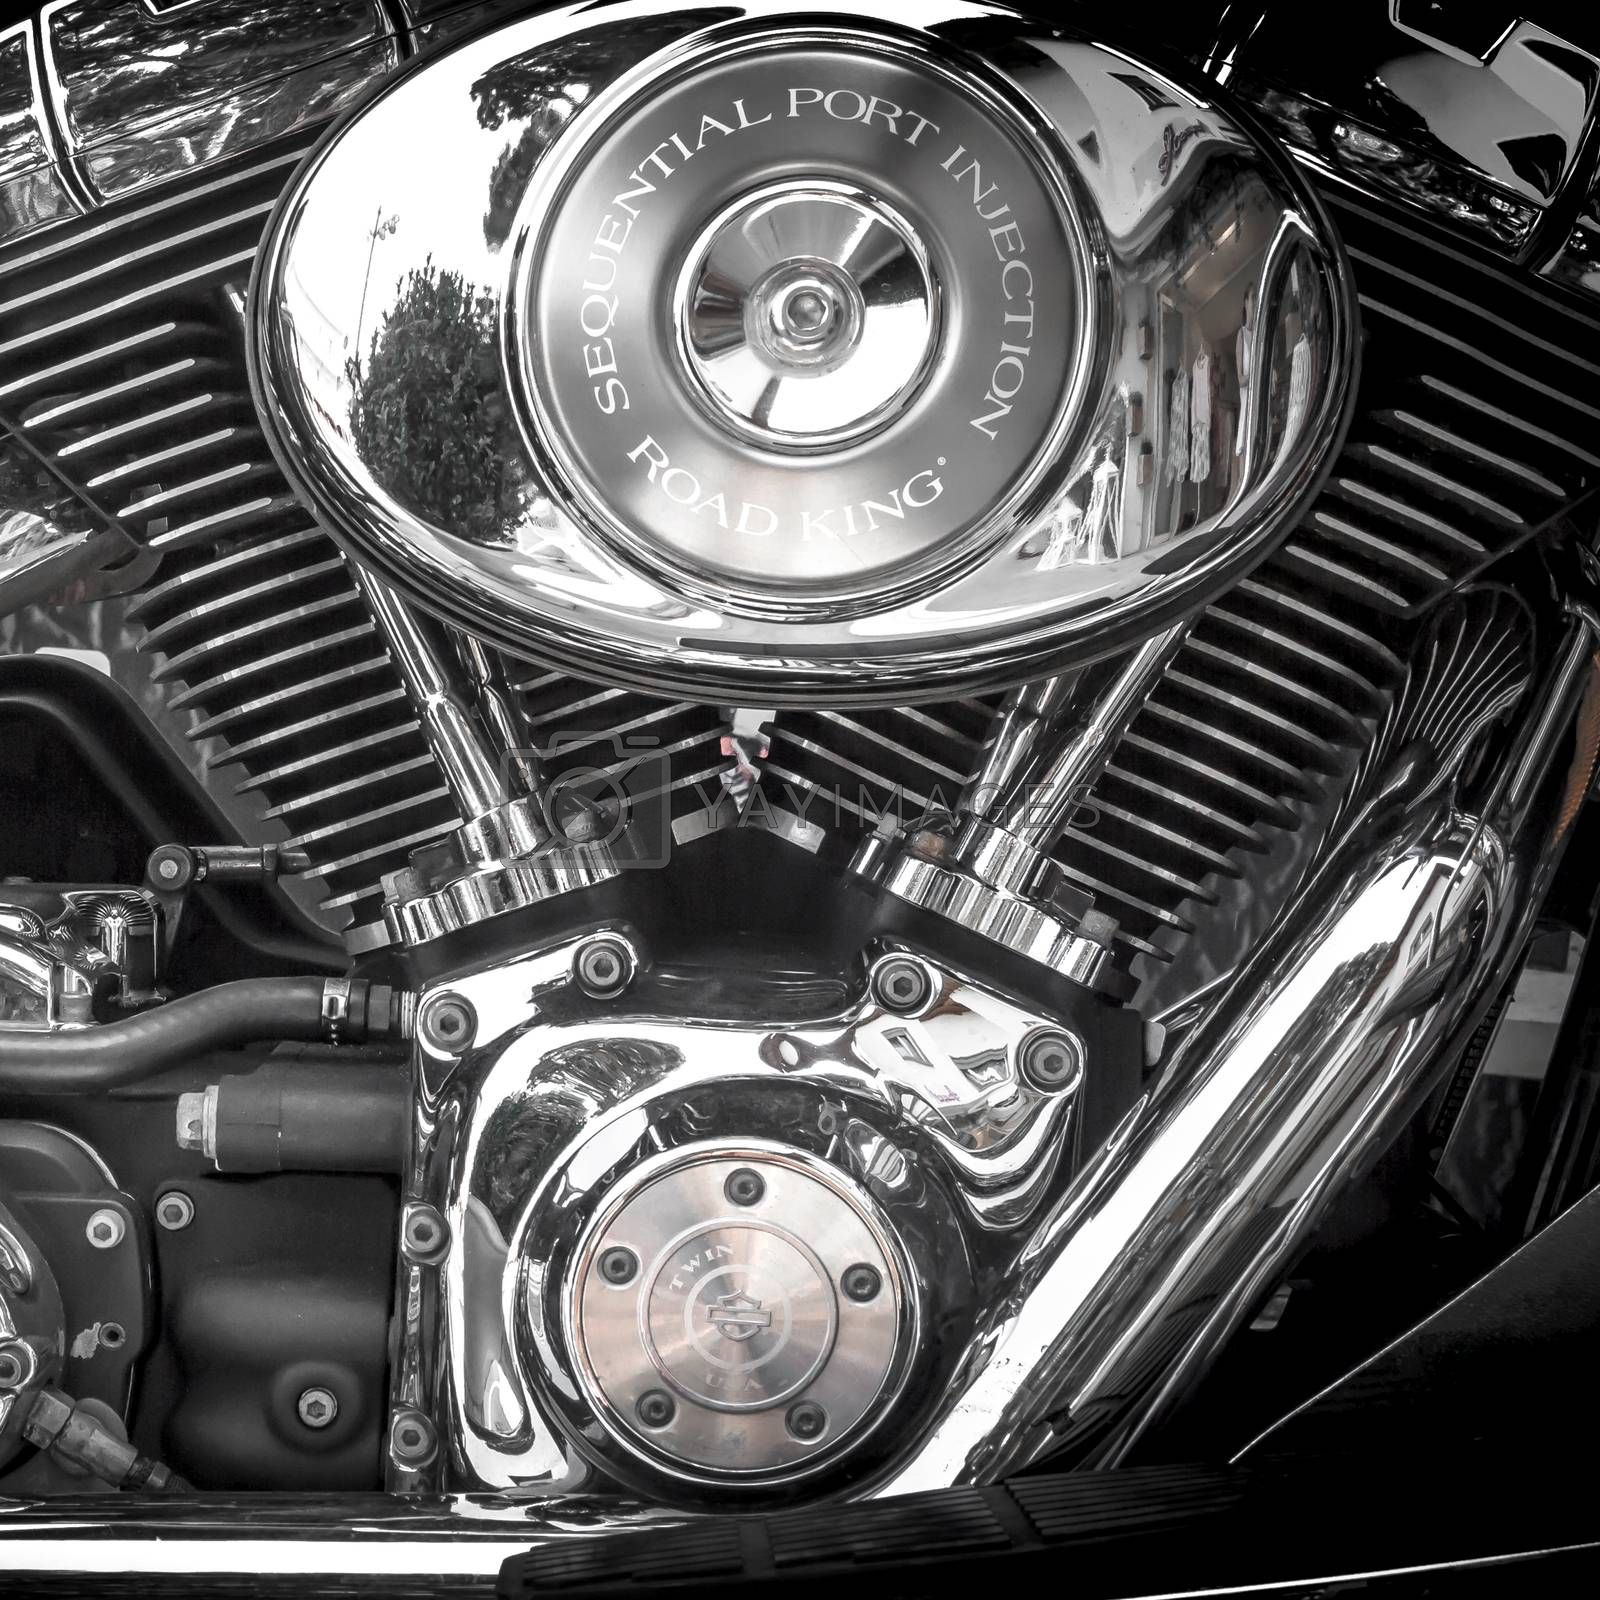 Motorcycle Harley Davidson. Motorcycle tank and engine's details. Jesolo (VE), ITALY - July 29, 2017.